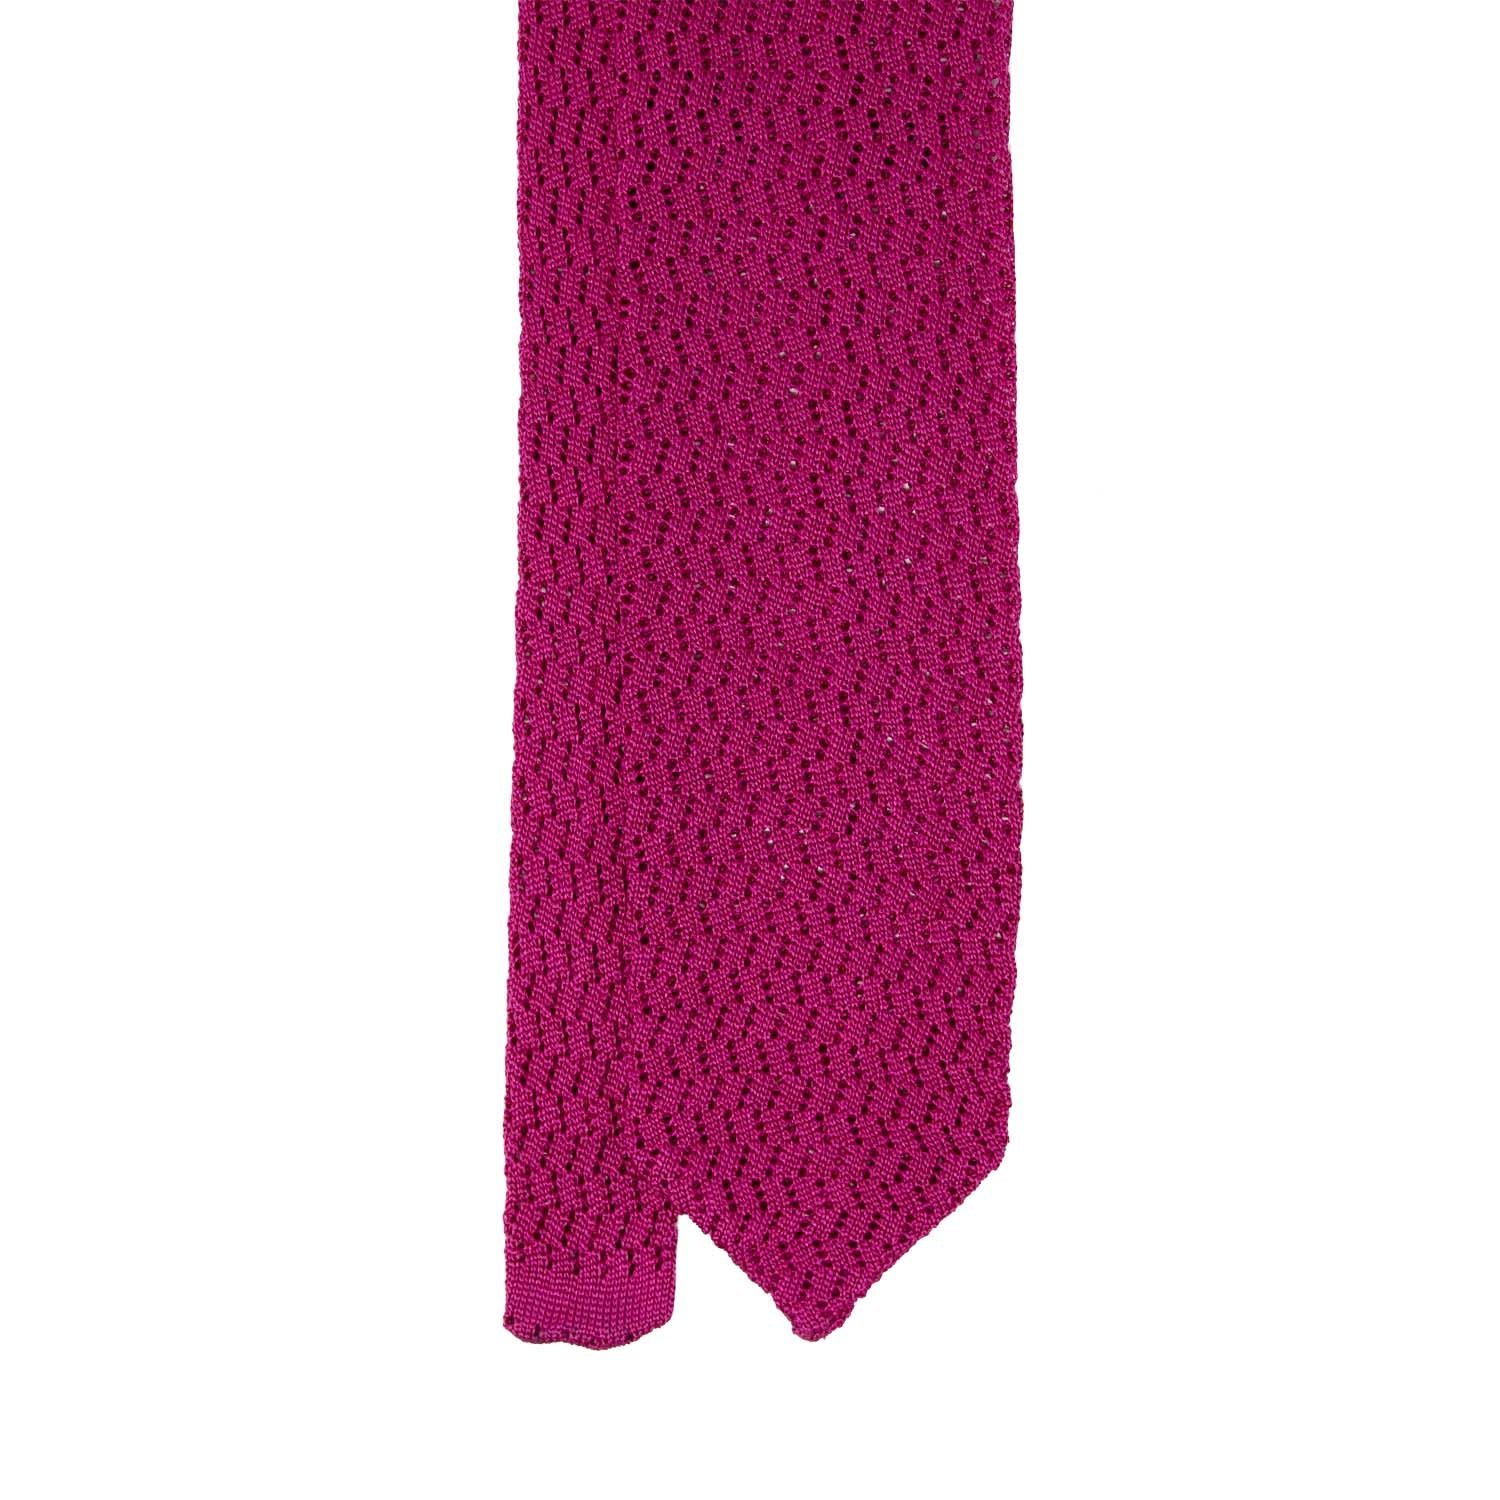 serà fine silk - Hot Pink Zig Zag V Point Knitted Tie